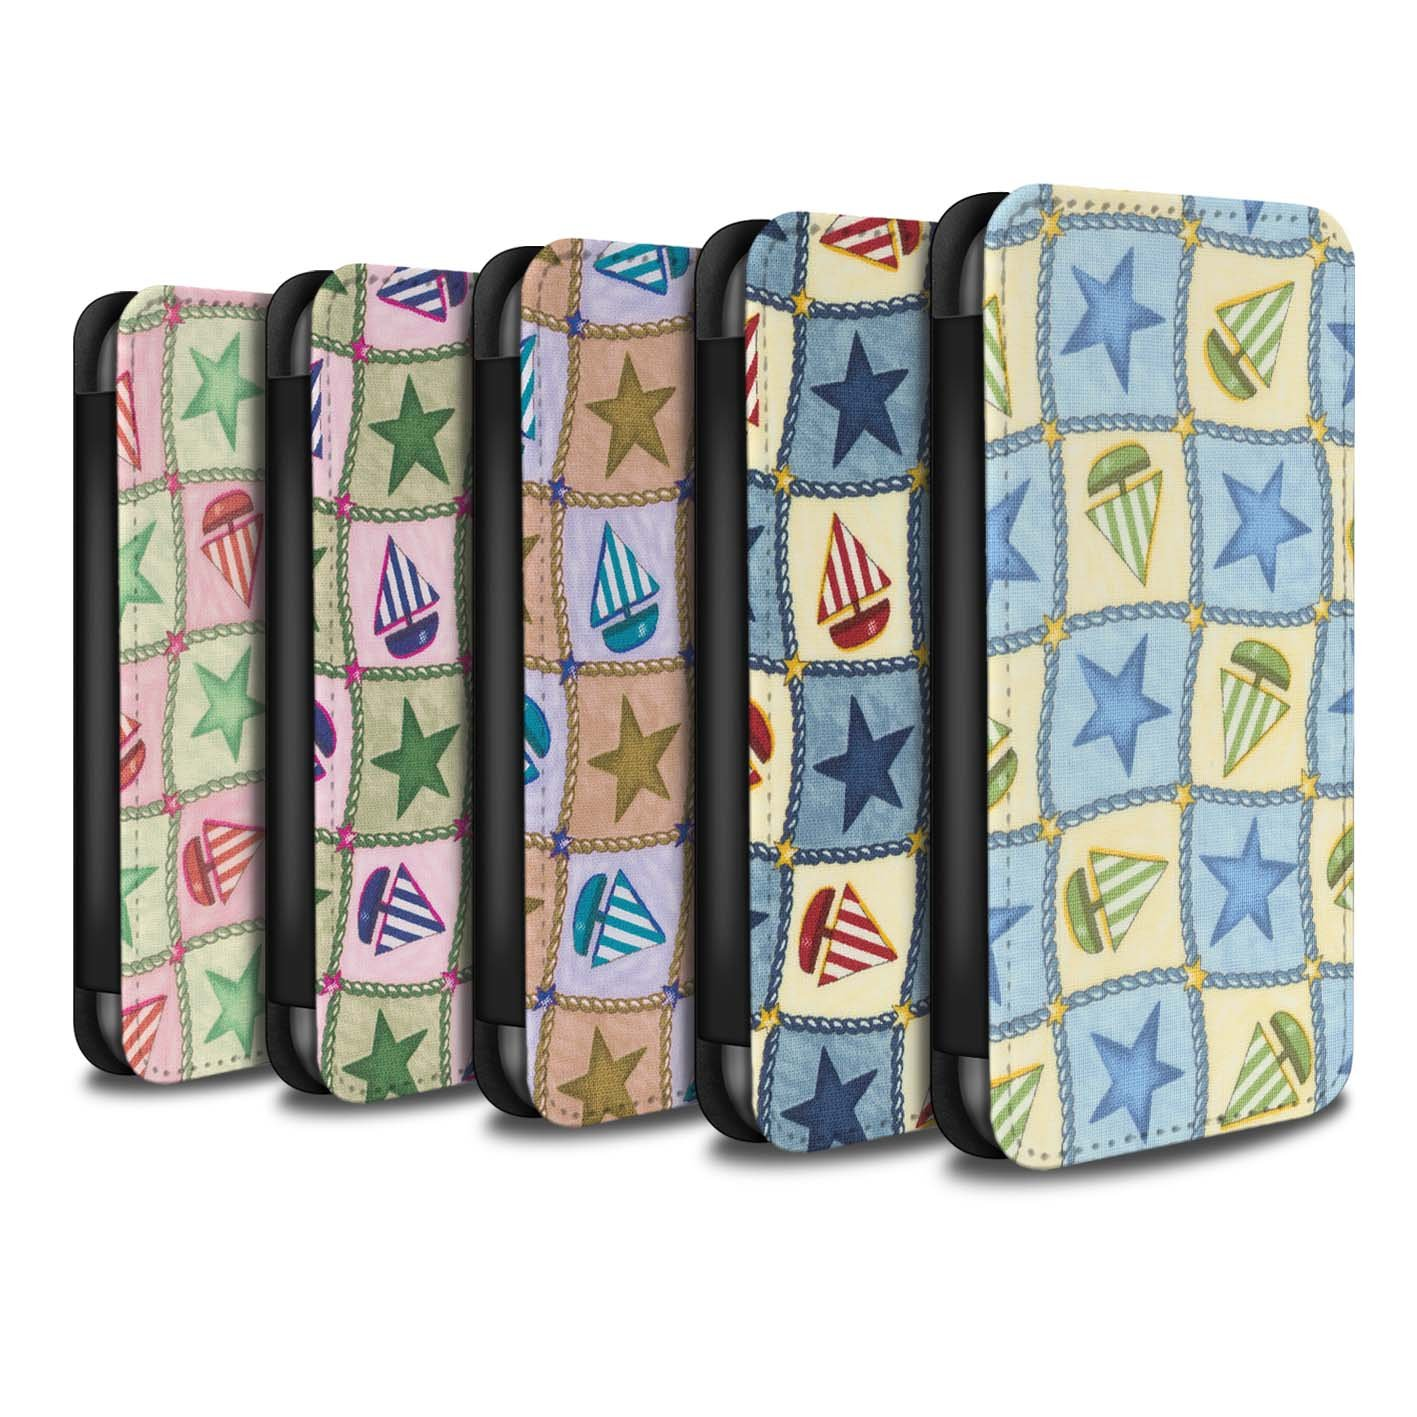 STUFF4 PU Leather Wallet Flip Case/Cover for Apple iPhone X/10 / Pack (10 Design) Design / Boat/Stars Pattern Collection